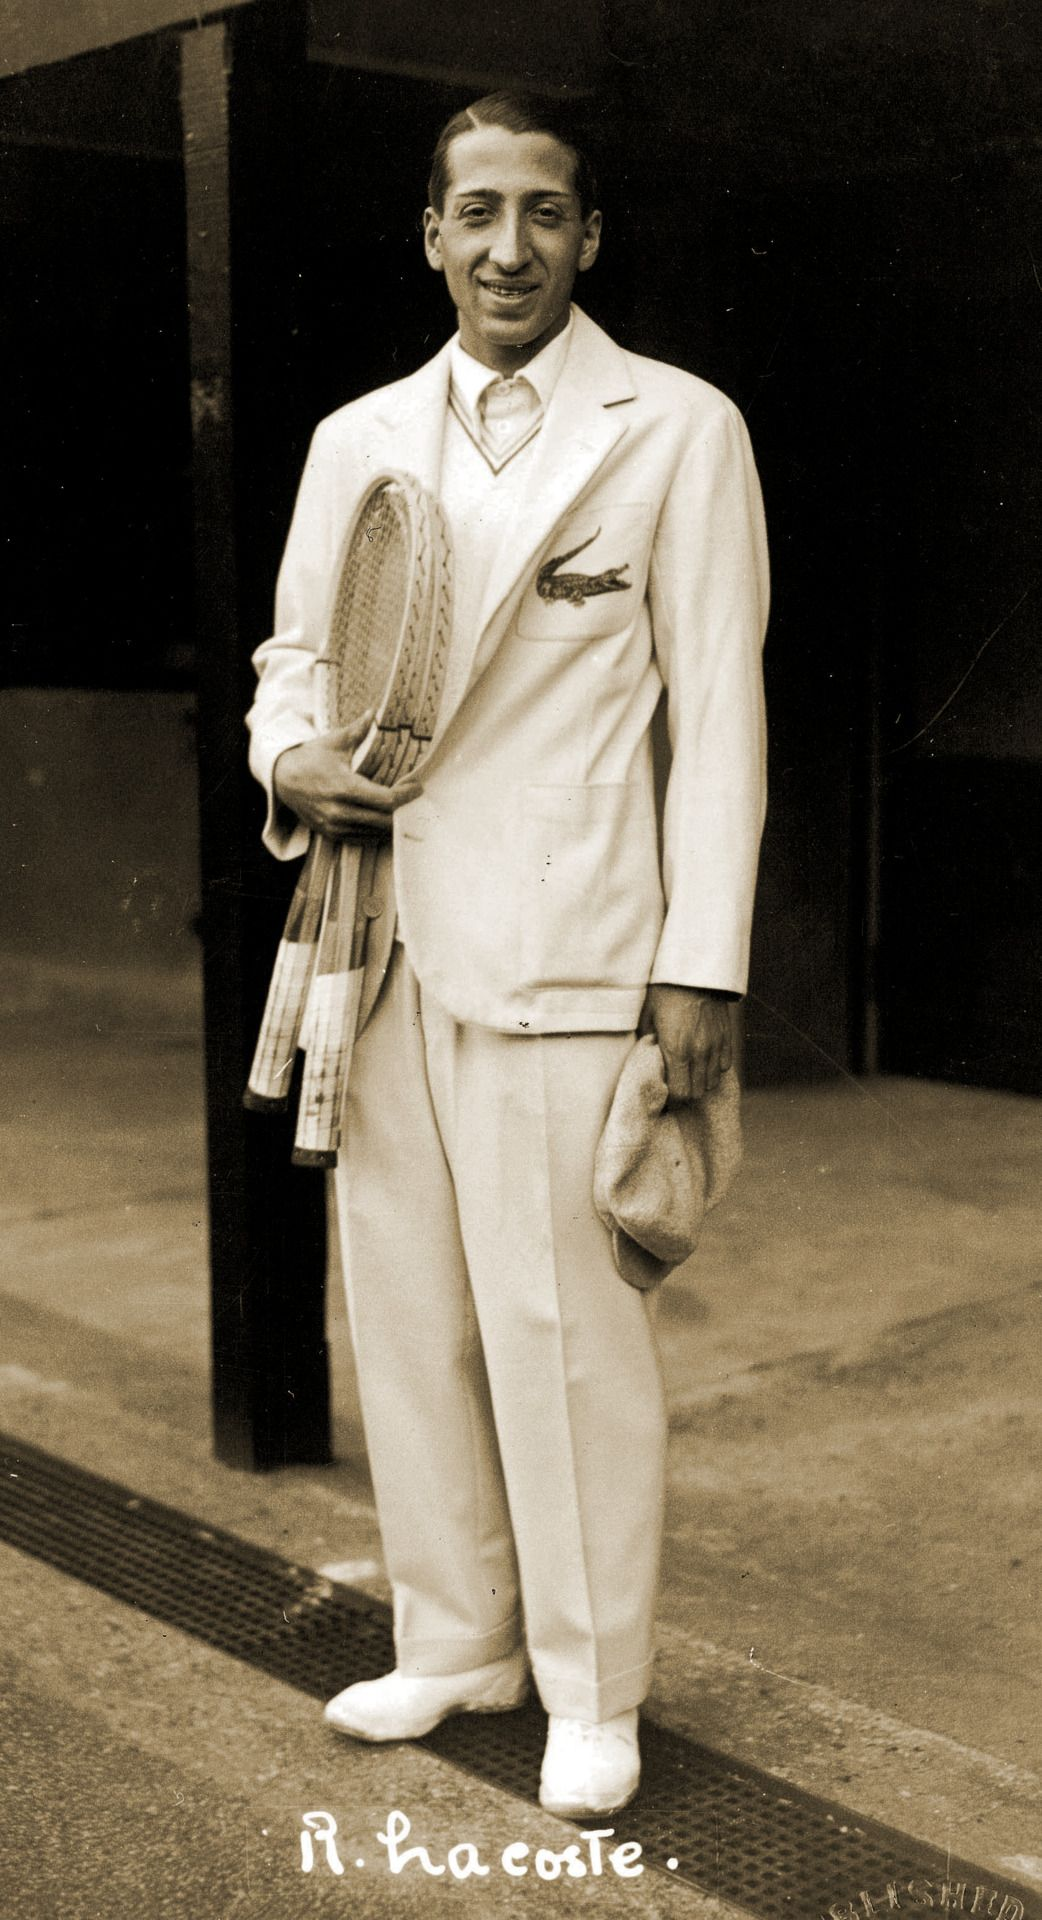 Rene Lacoste 1904 96 French tennis champion and businessman